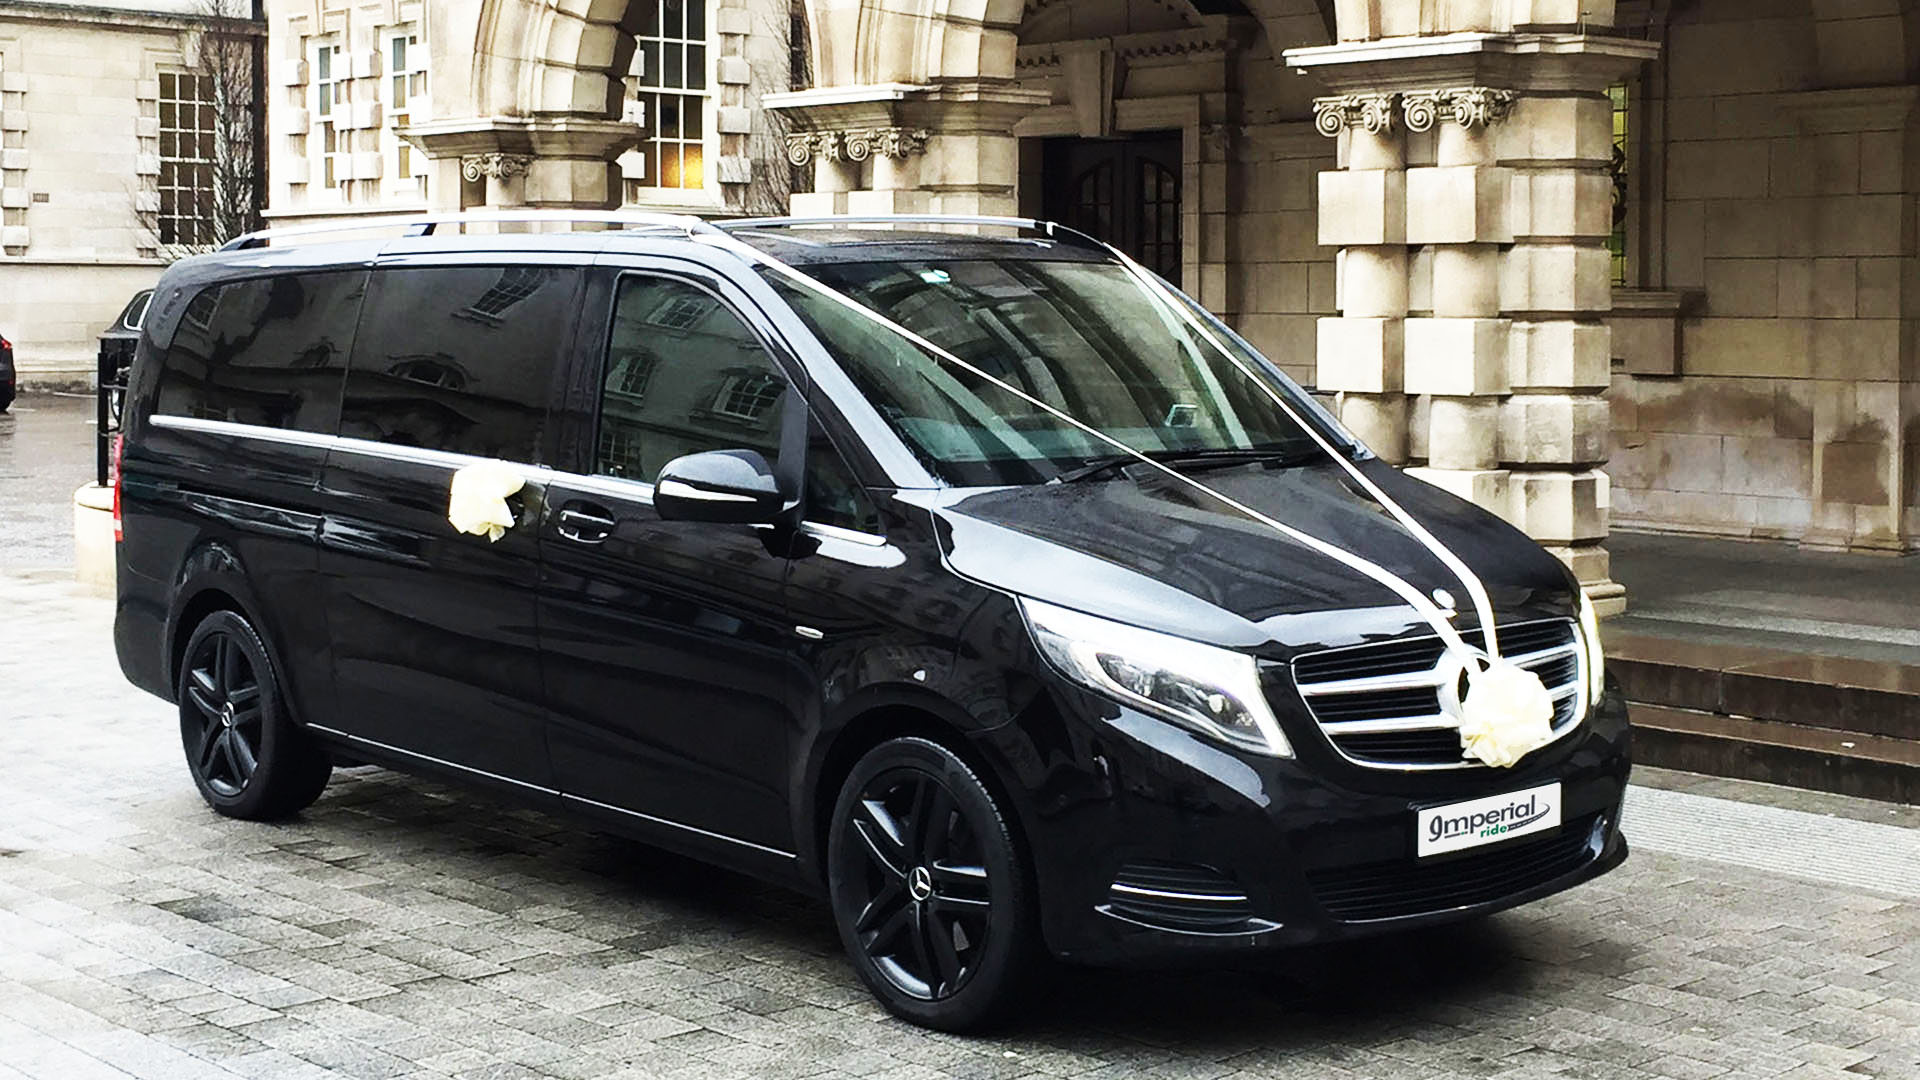 v-class-wedding-hire-in-hillingdon